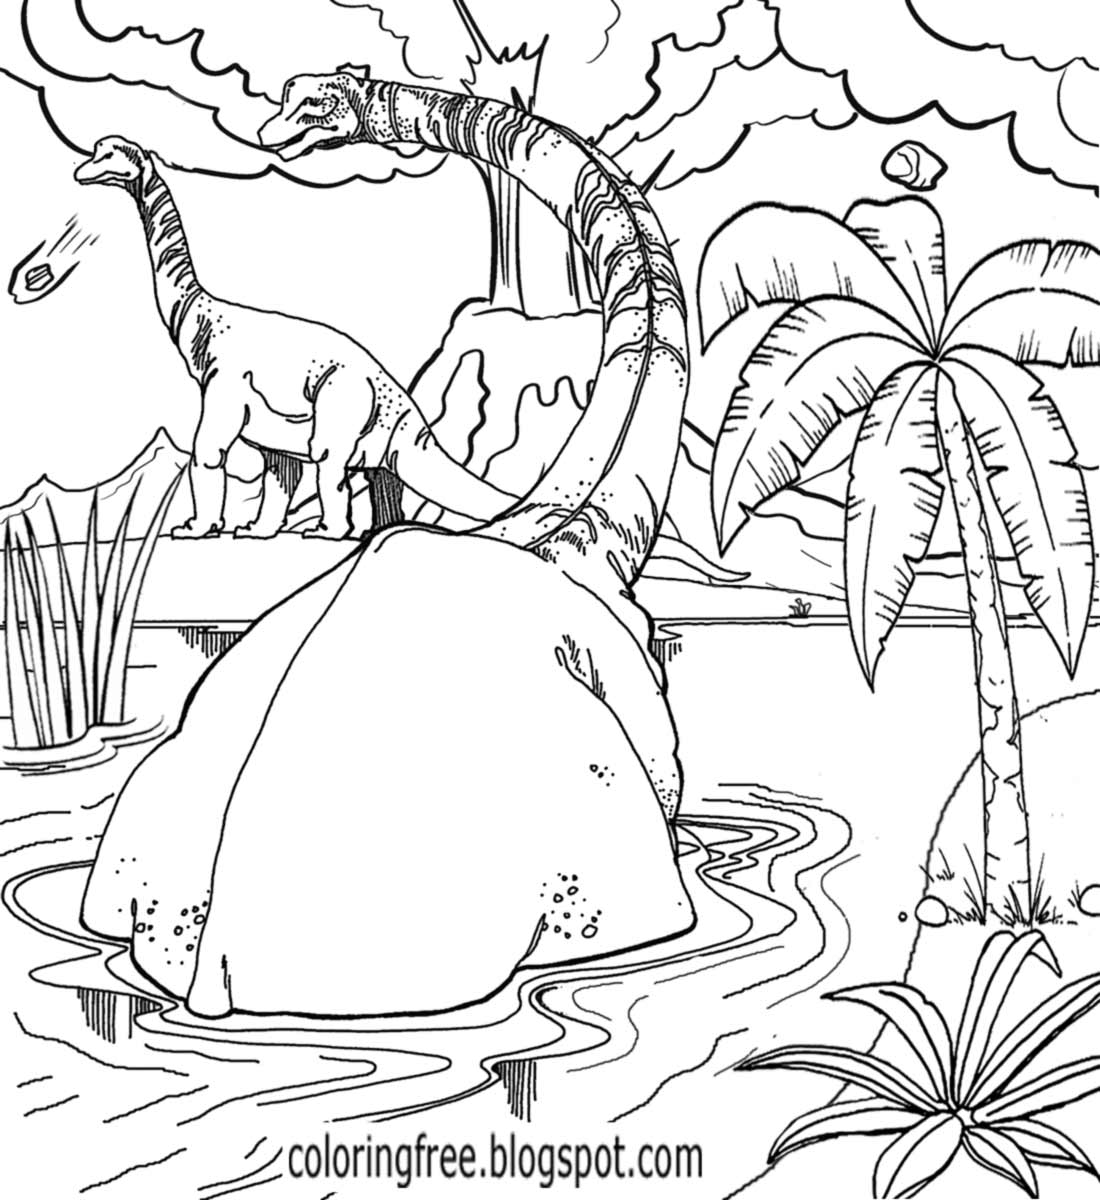 dinosaur landscape coloring page free coloring pages printable pictures to color kids dinosaur landscape coloring page